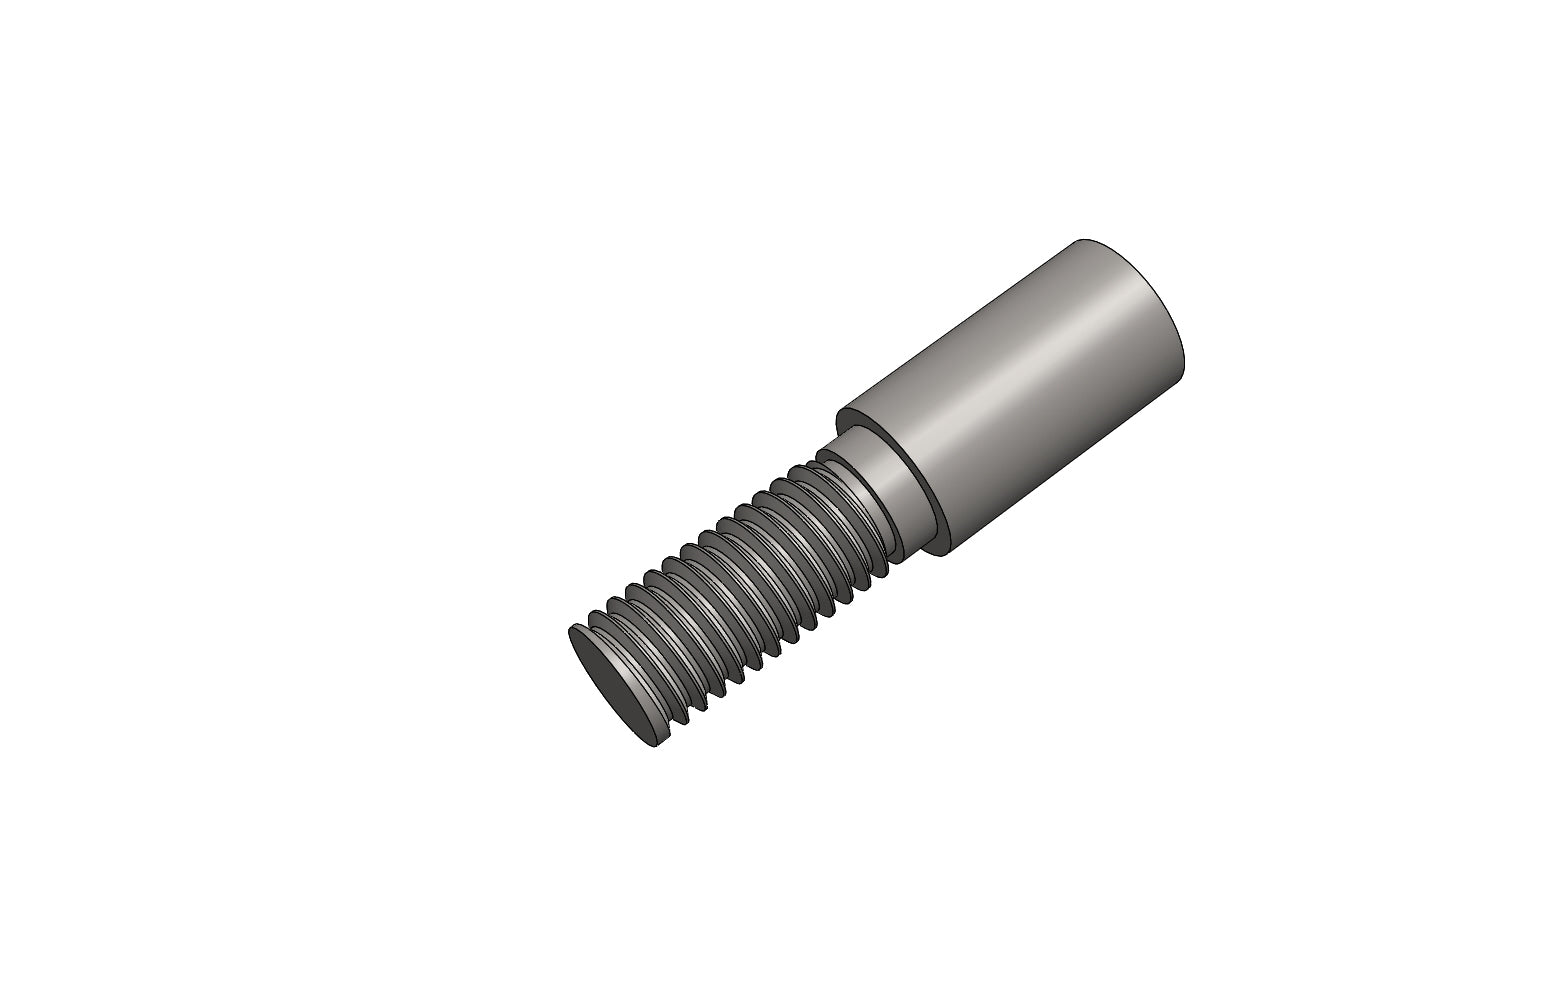 SCM00075A - SLAT PIN - Slat Filler Spare Part